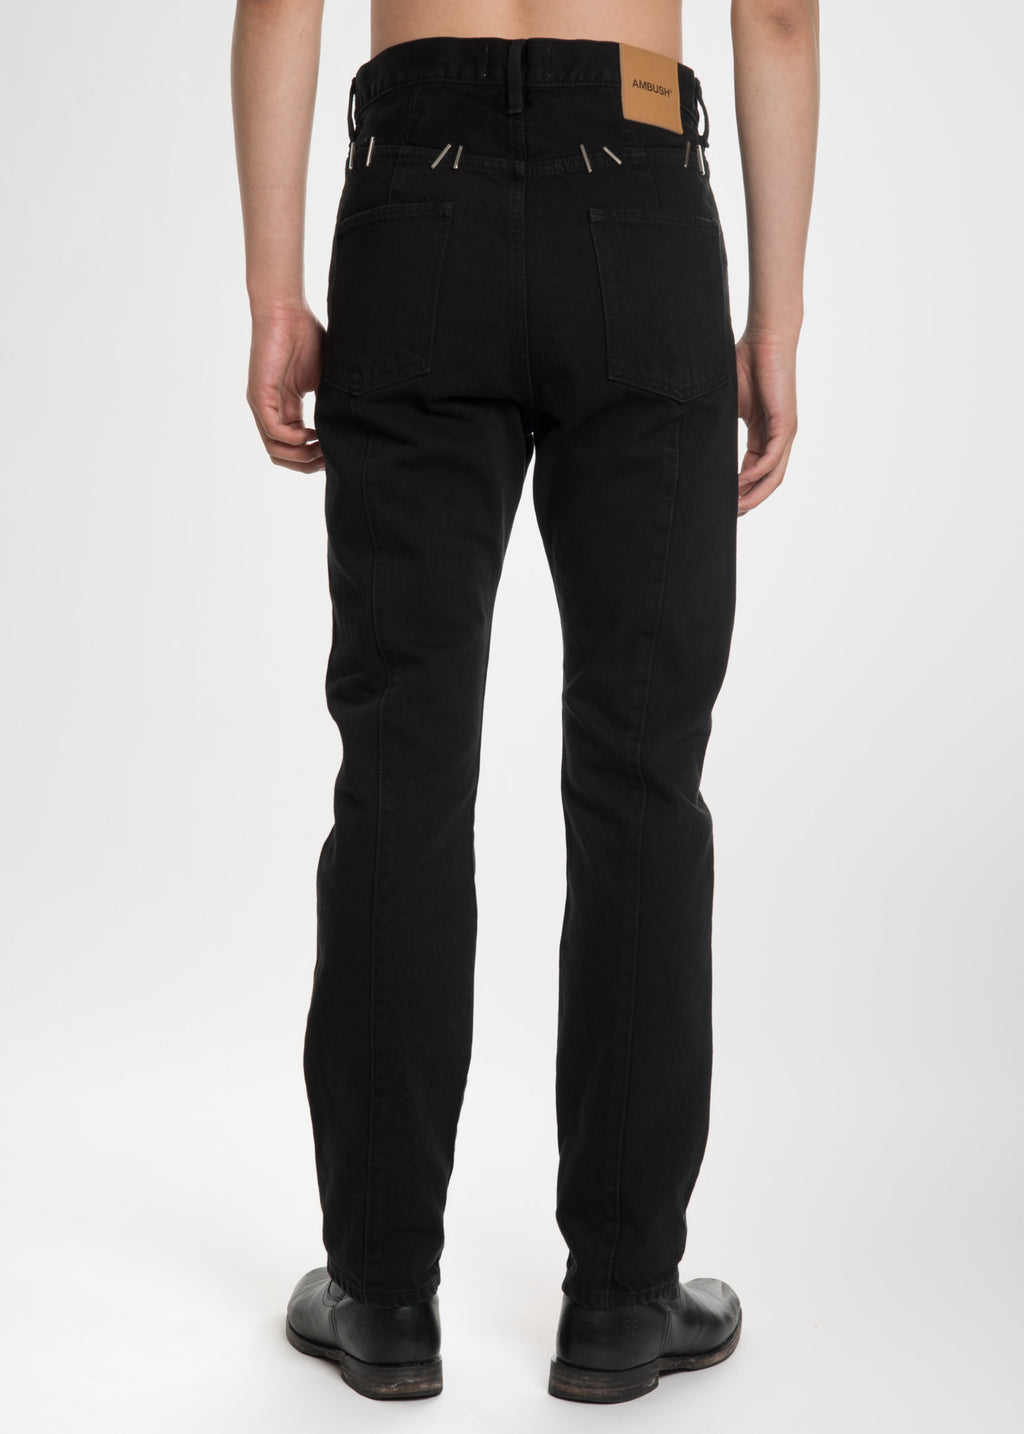 Ambush, Black Stapled Denim Trousers, 017 Shop